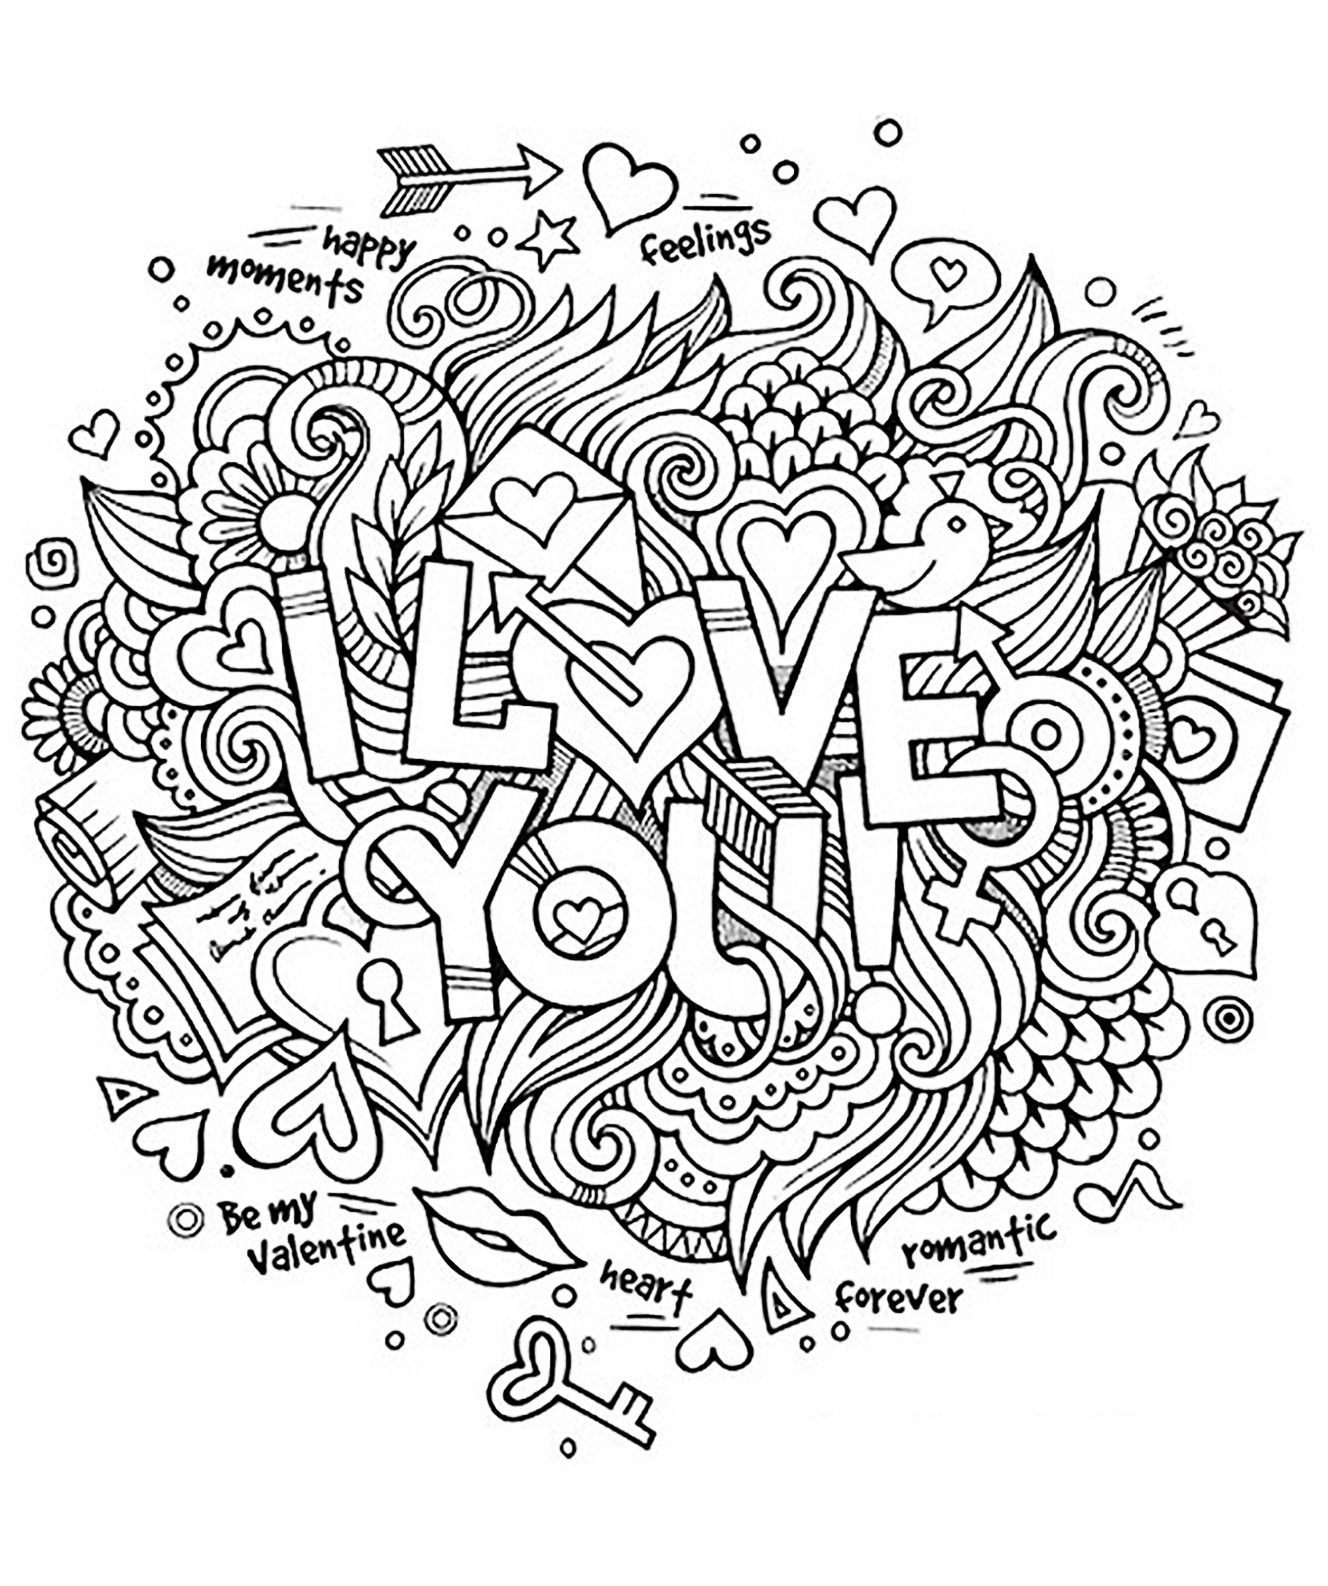 I Love You Coloring Pages Pdf : I love you quotes coloring pages for